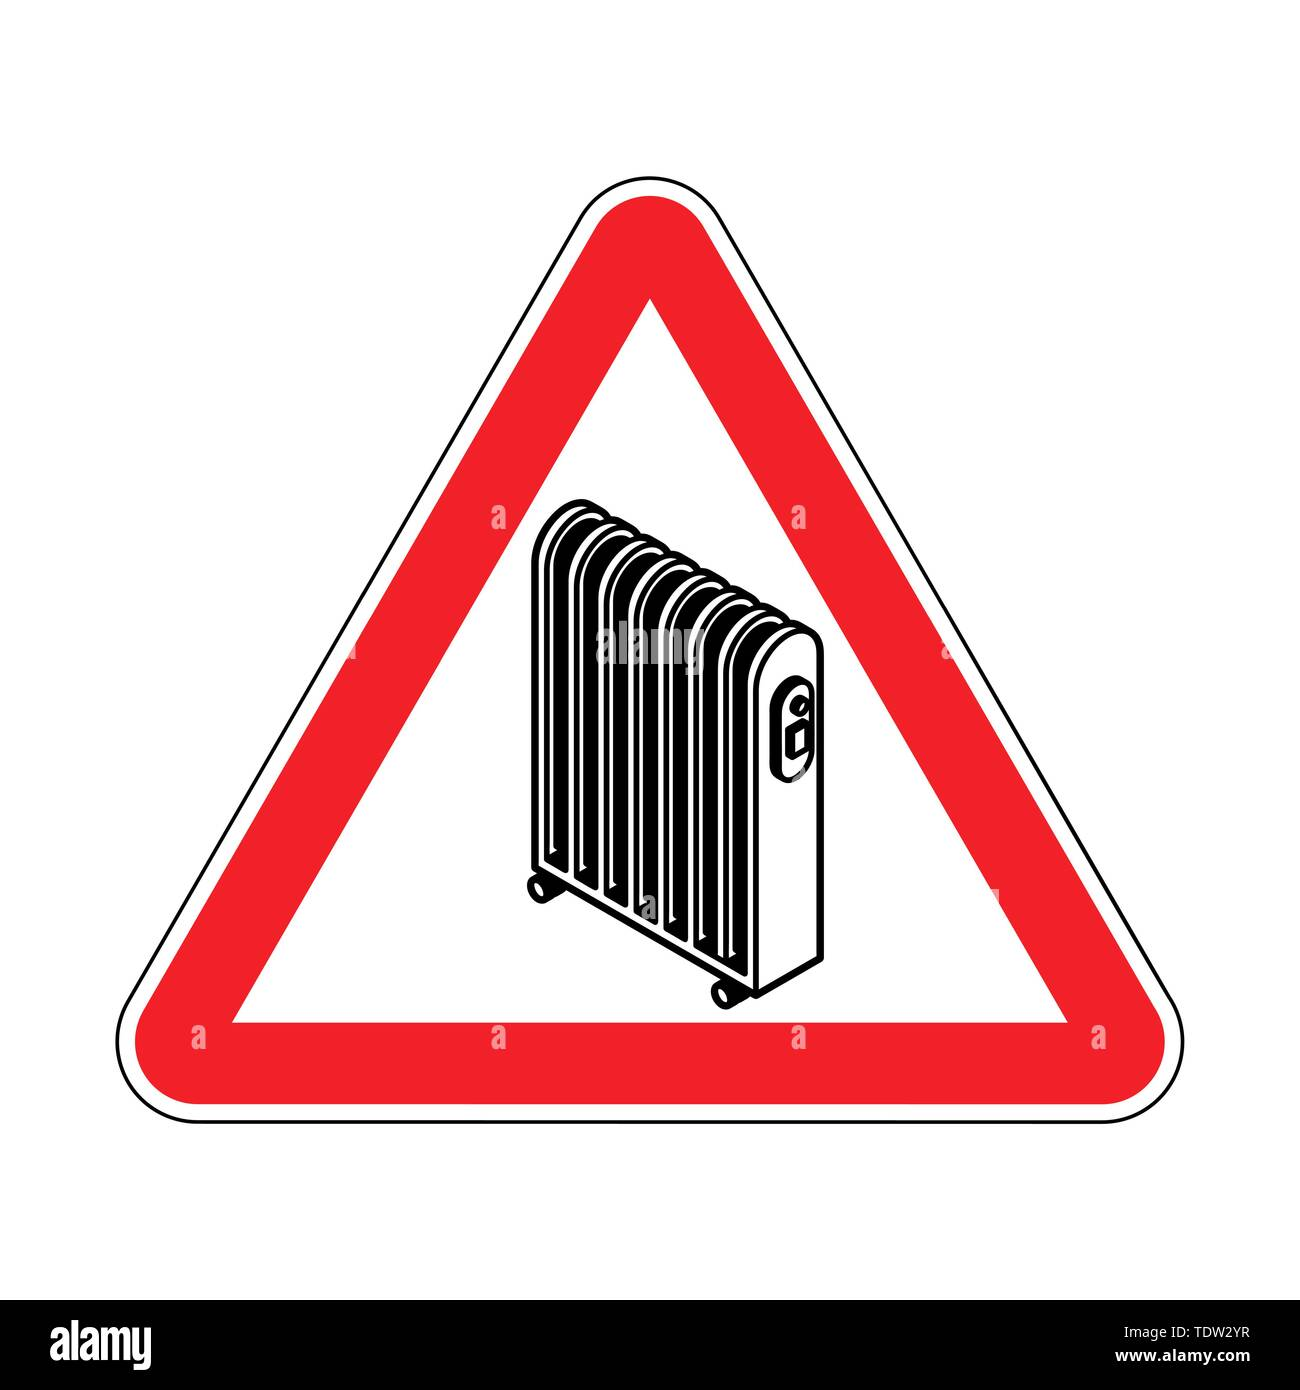 Attention Radiator heat . Warning red road sign. Caution Electric heating radiator - Stock Image